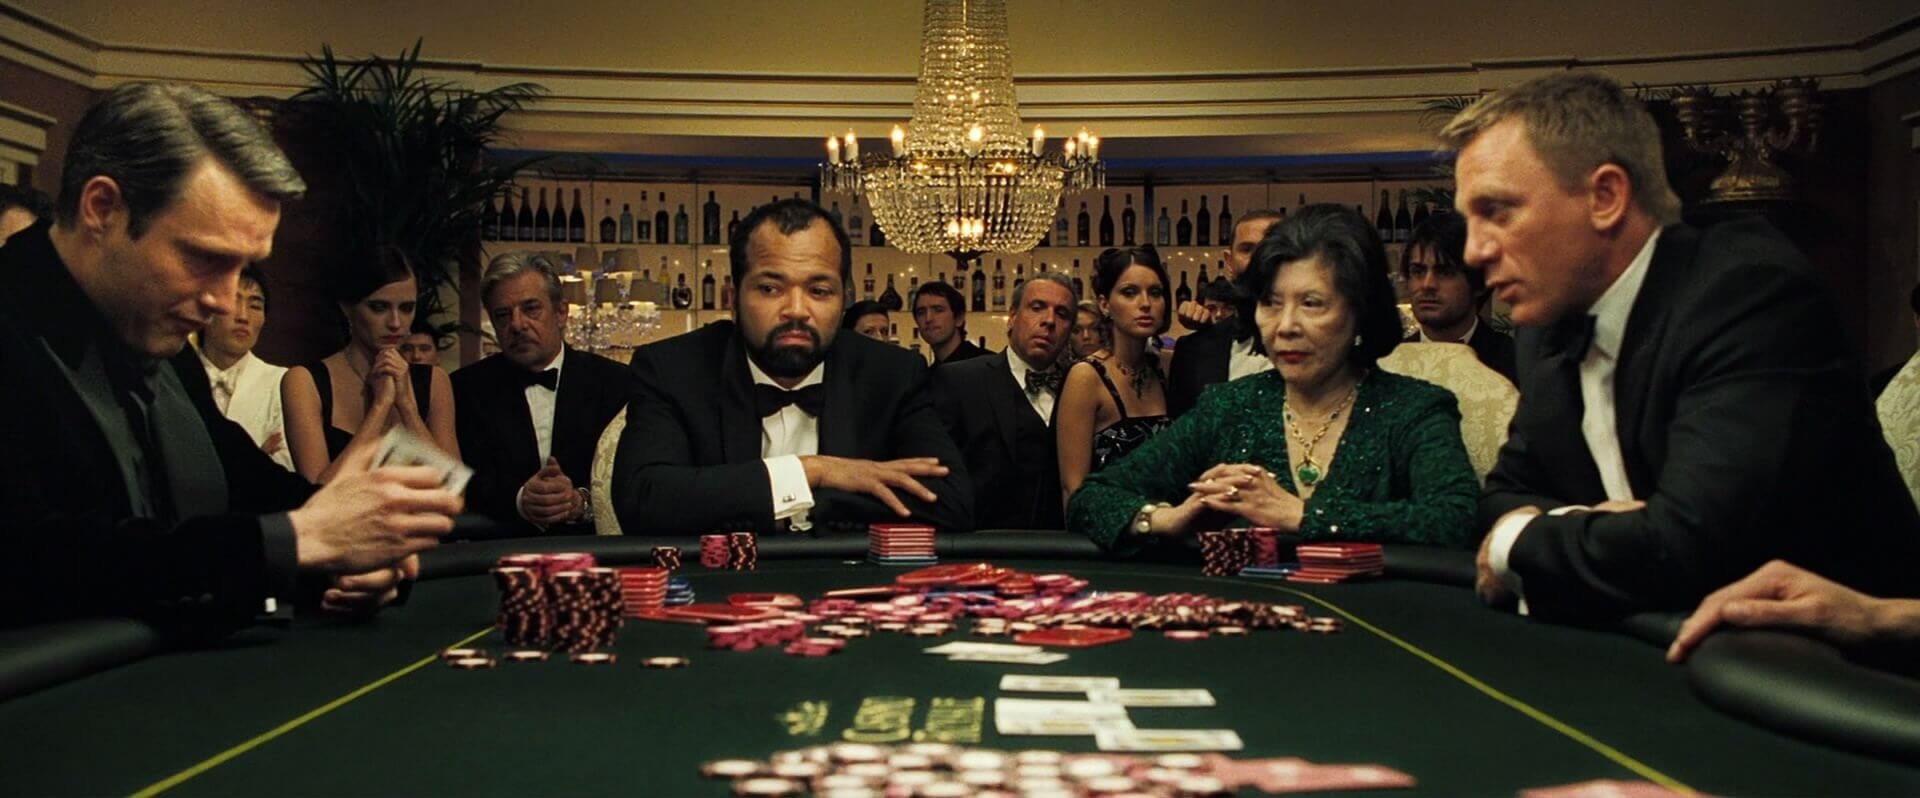 Is the poker game in Casino Royale realistic